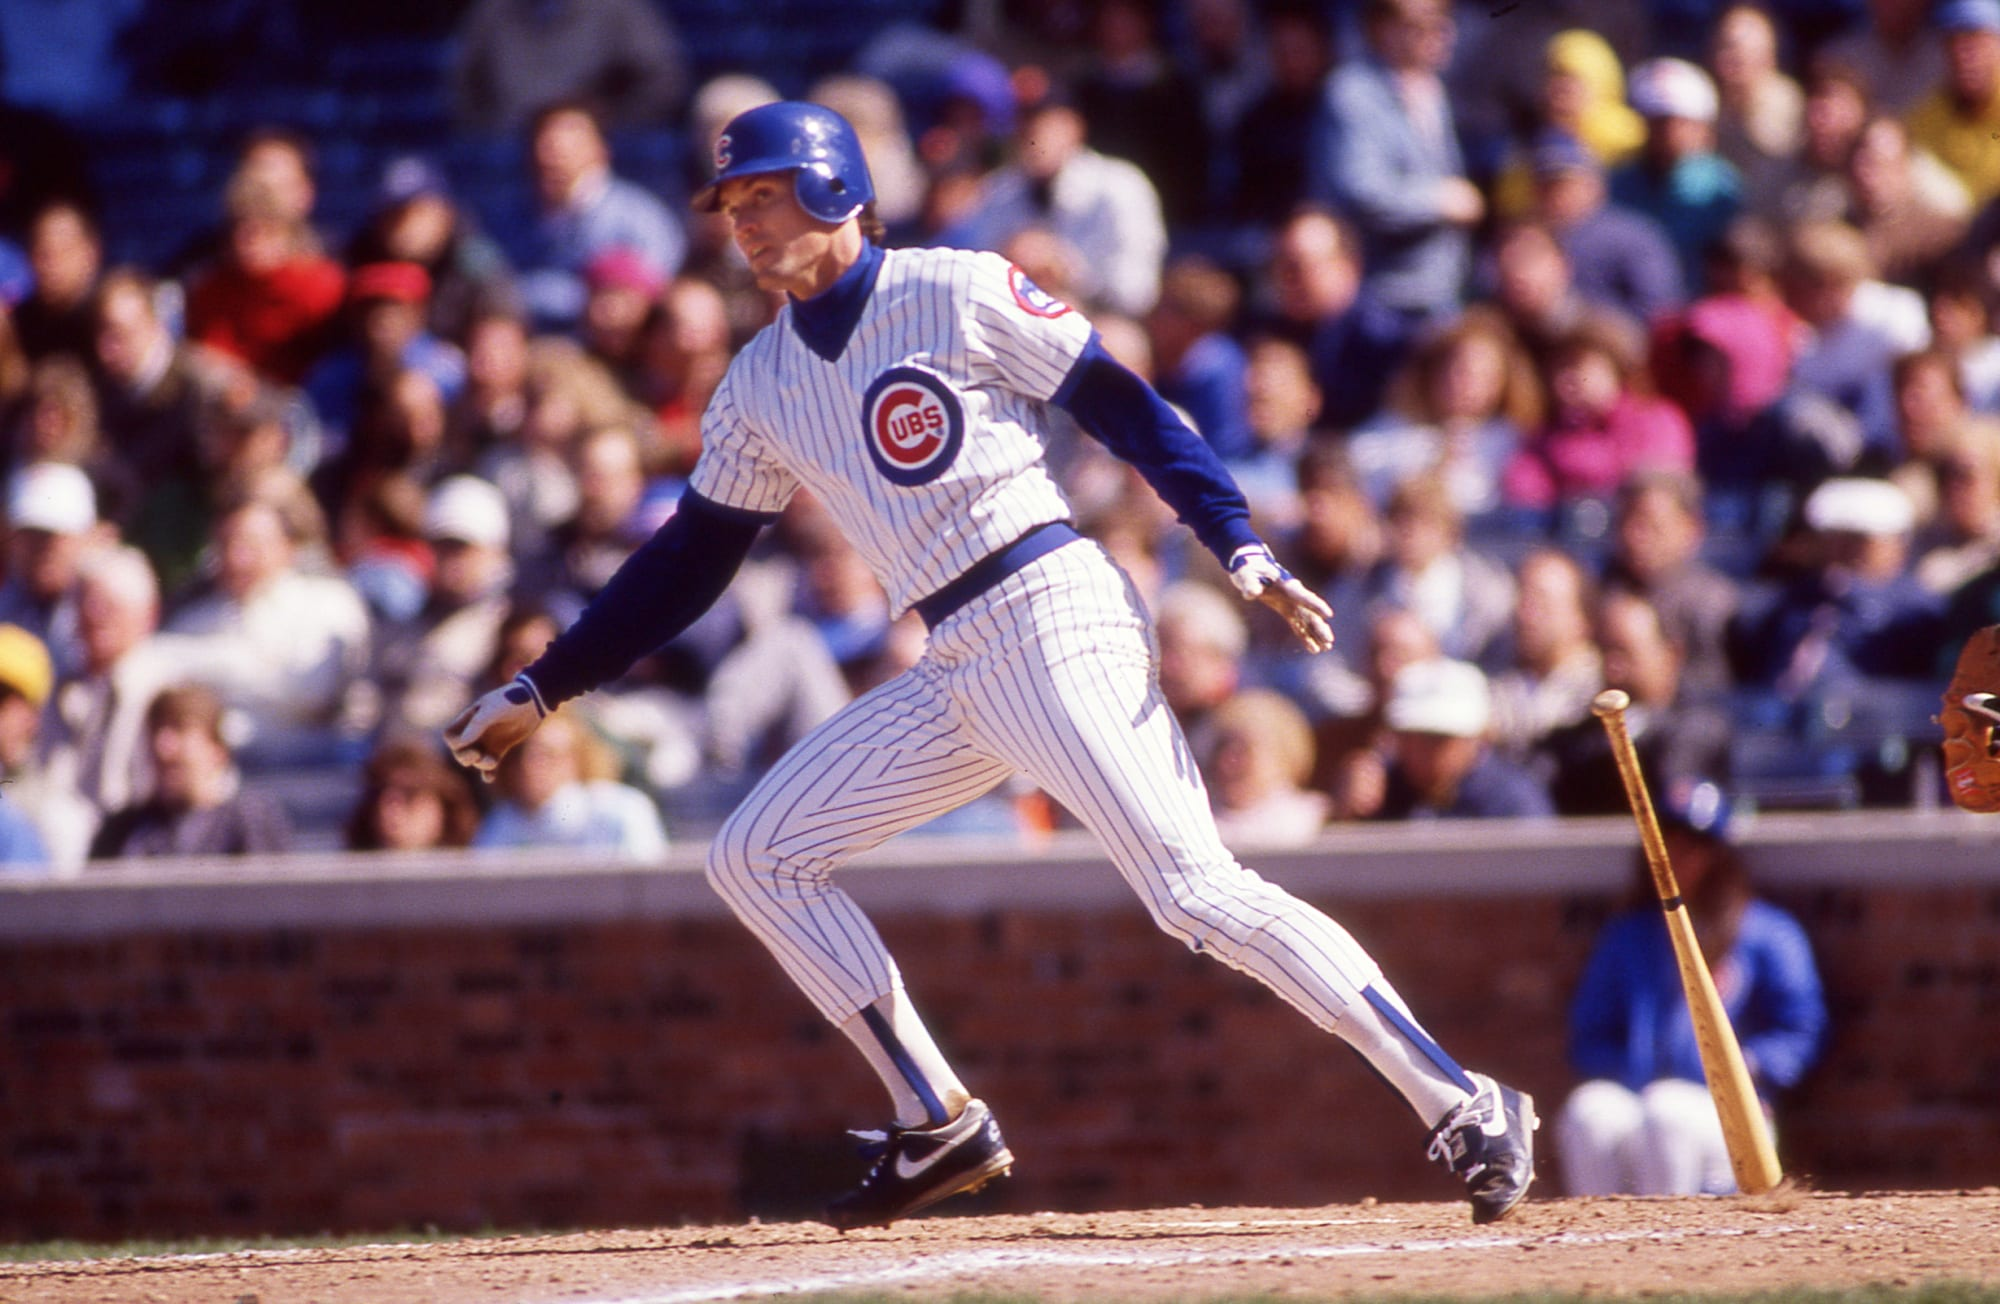 Cubs may never again see anything close to the Sandberg Game